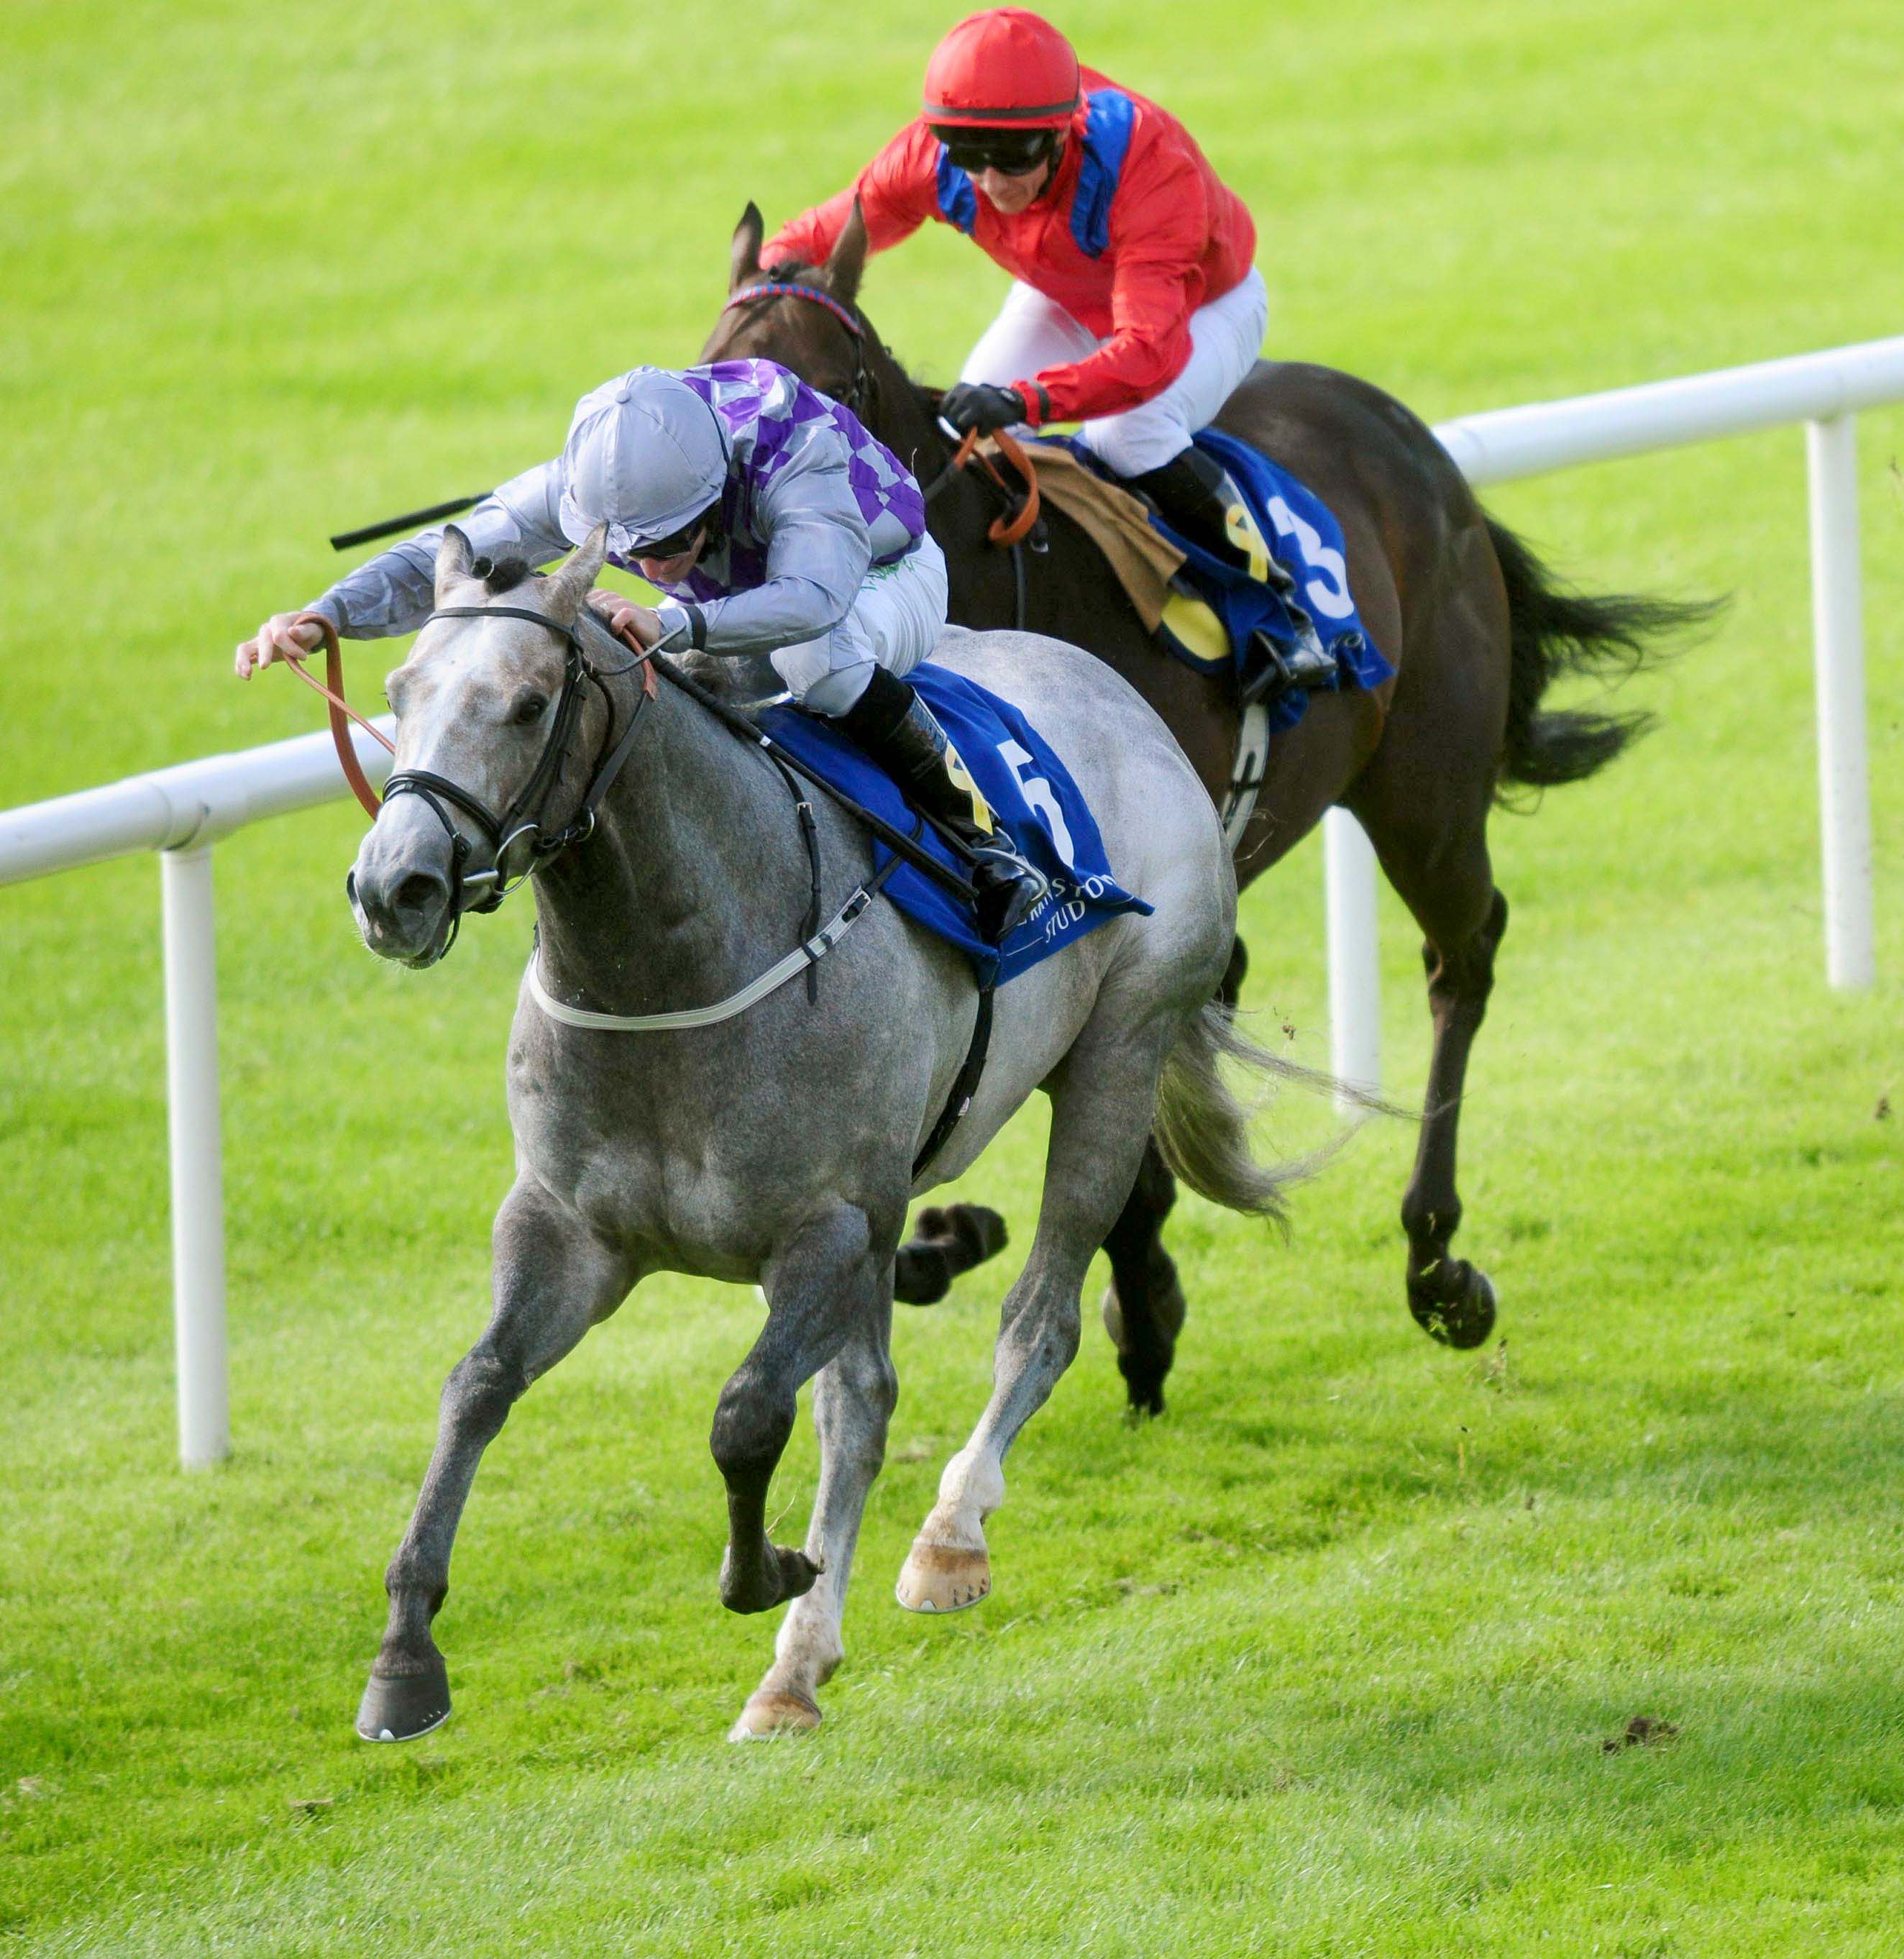 DERRINSTOWN FLYING FIVE (GR1) - Havana Grey, le doublé inoubliable de Karl Burke